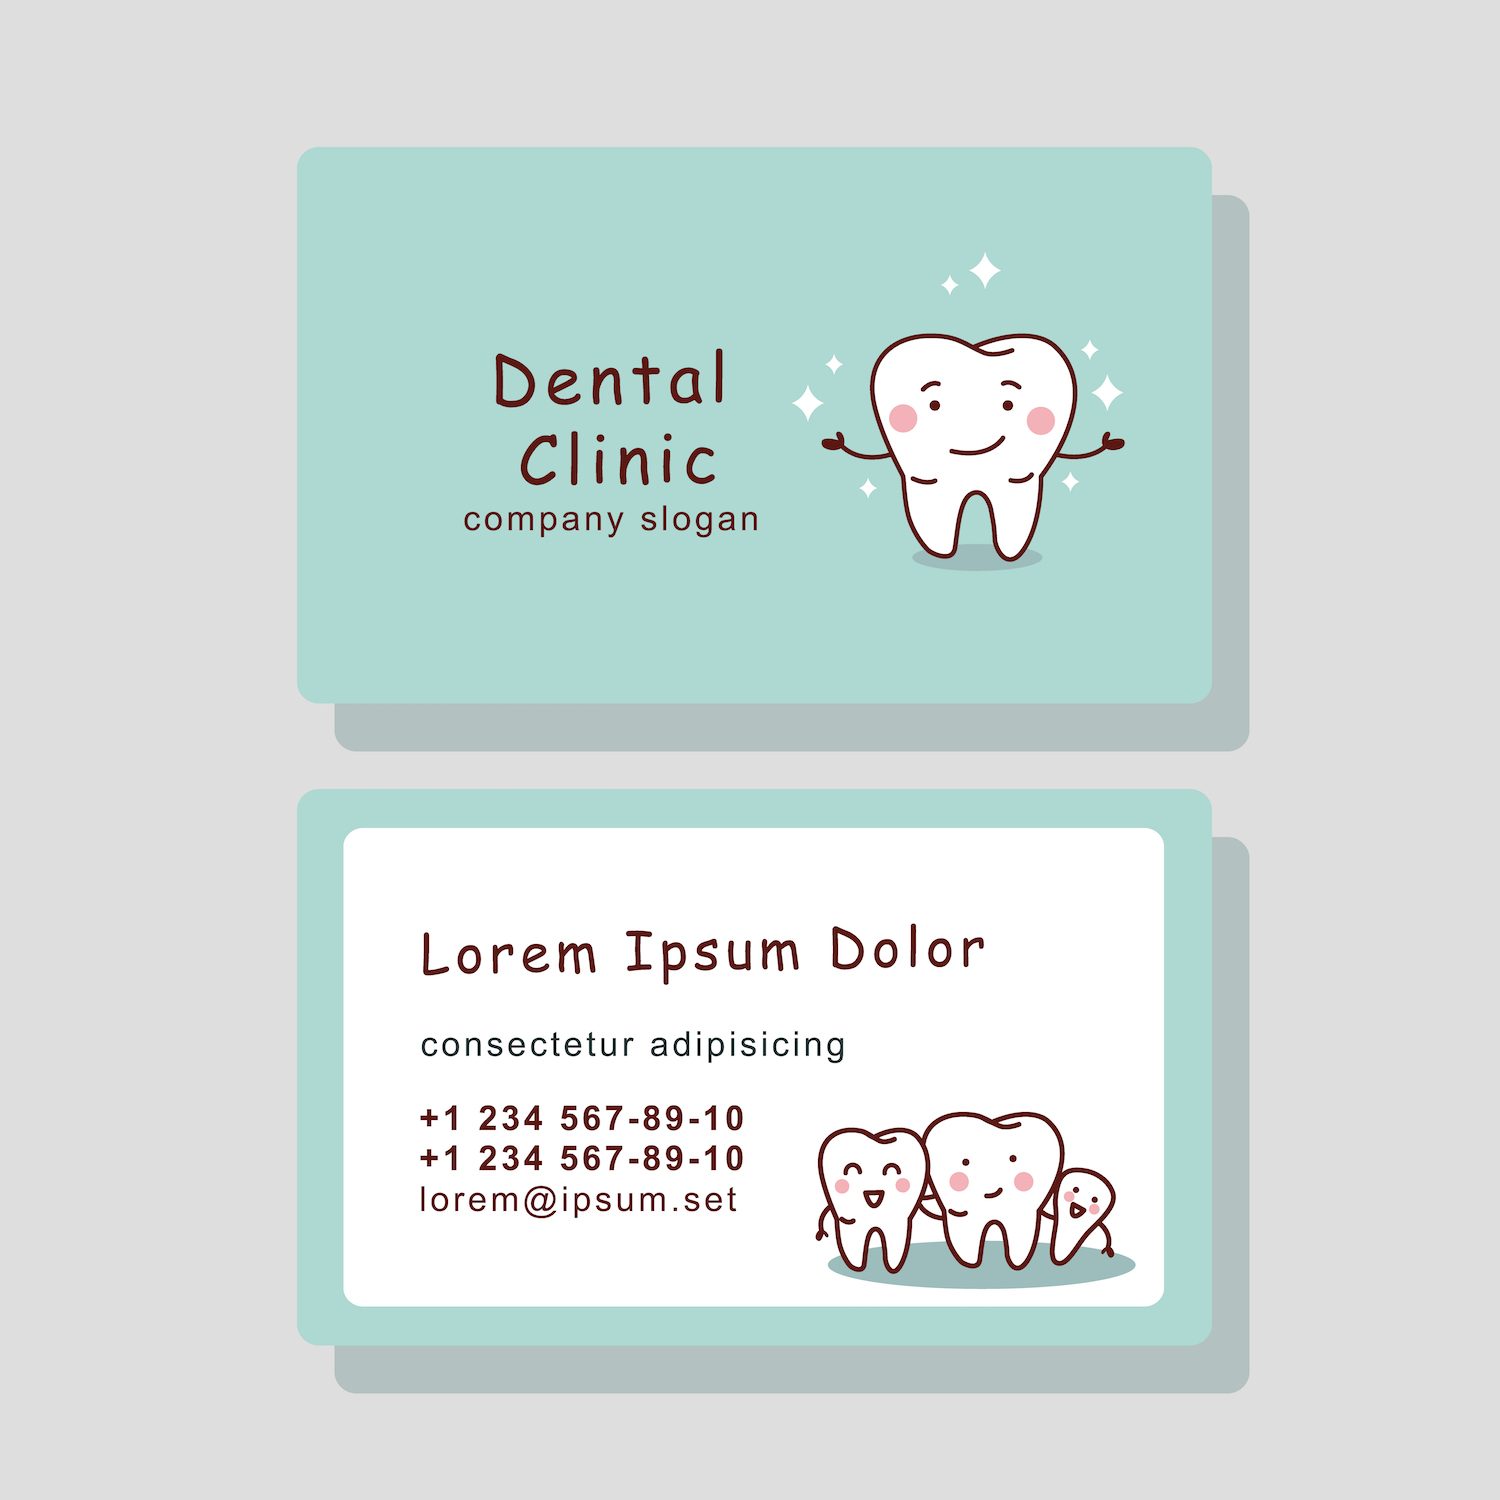 Dental business cards business card tips dental business cards accmission